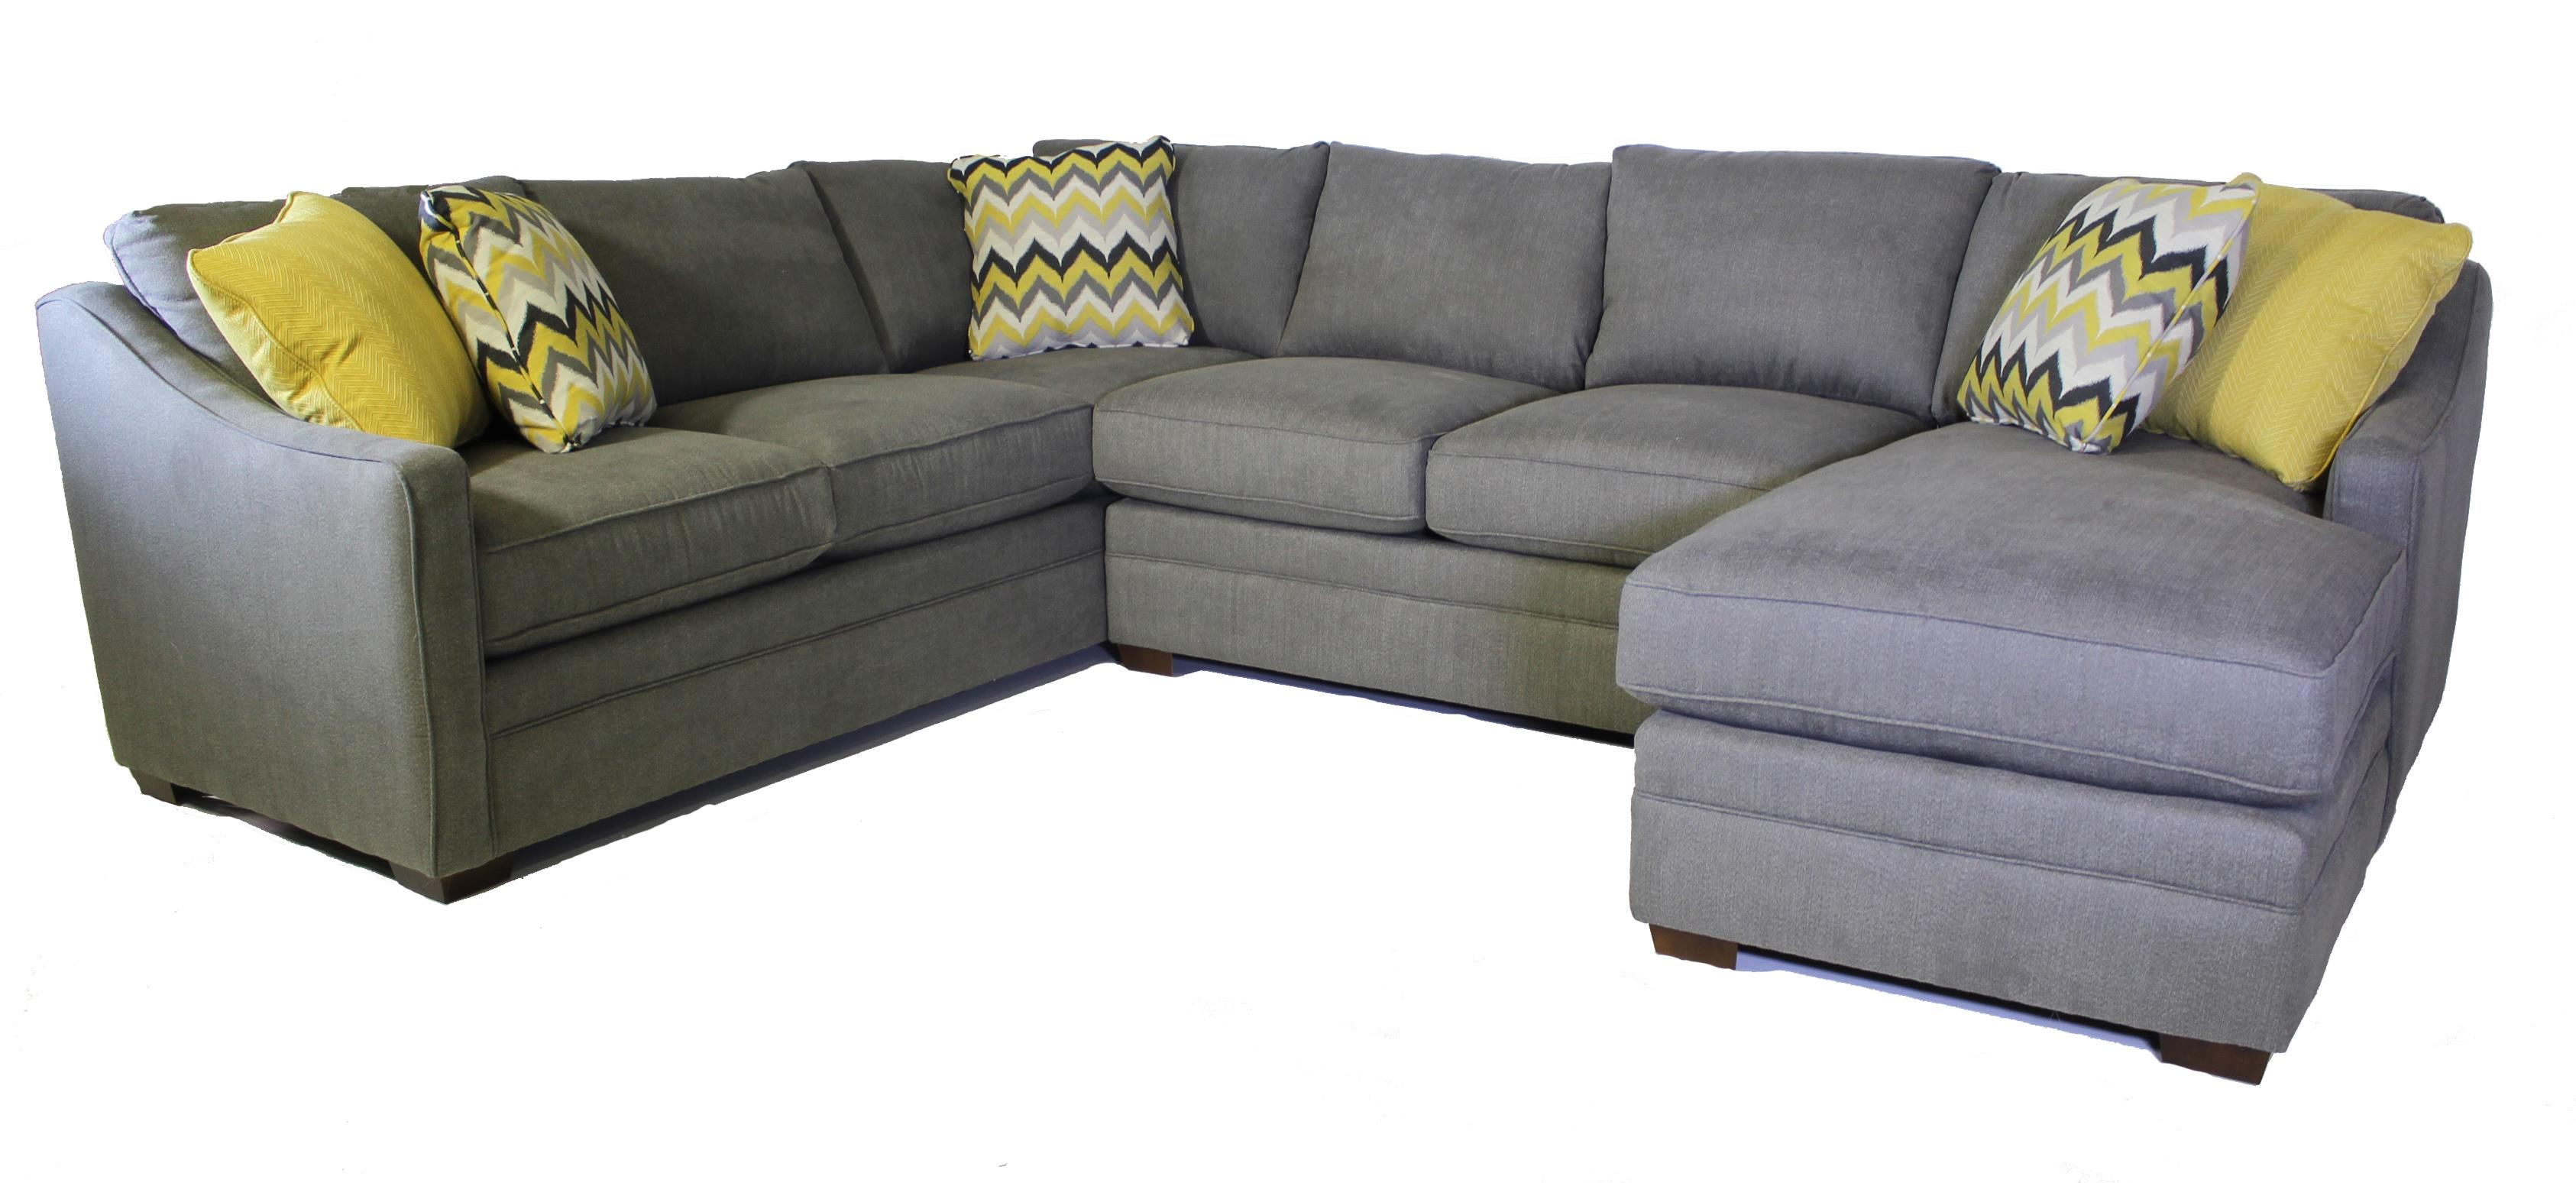 Craftmaster F9 Custom Collection Sectional Sofa Old Brick